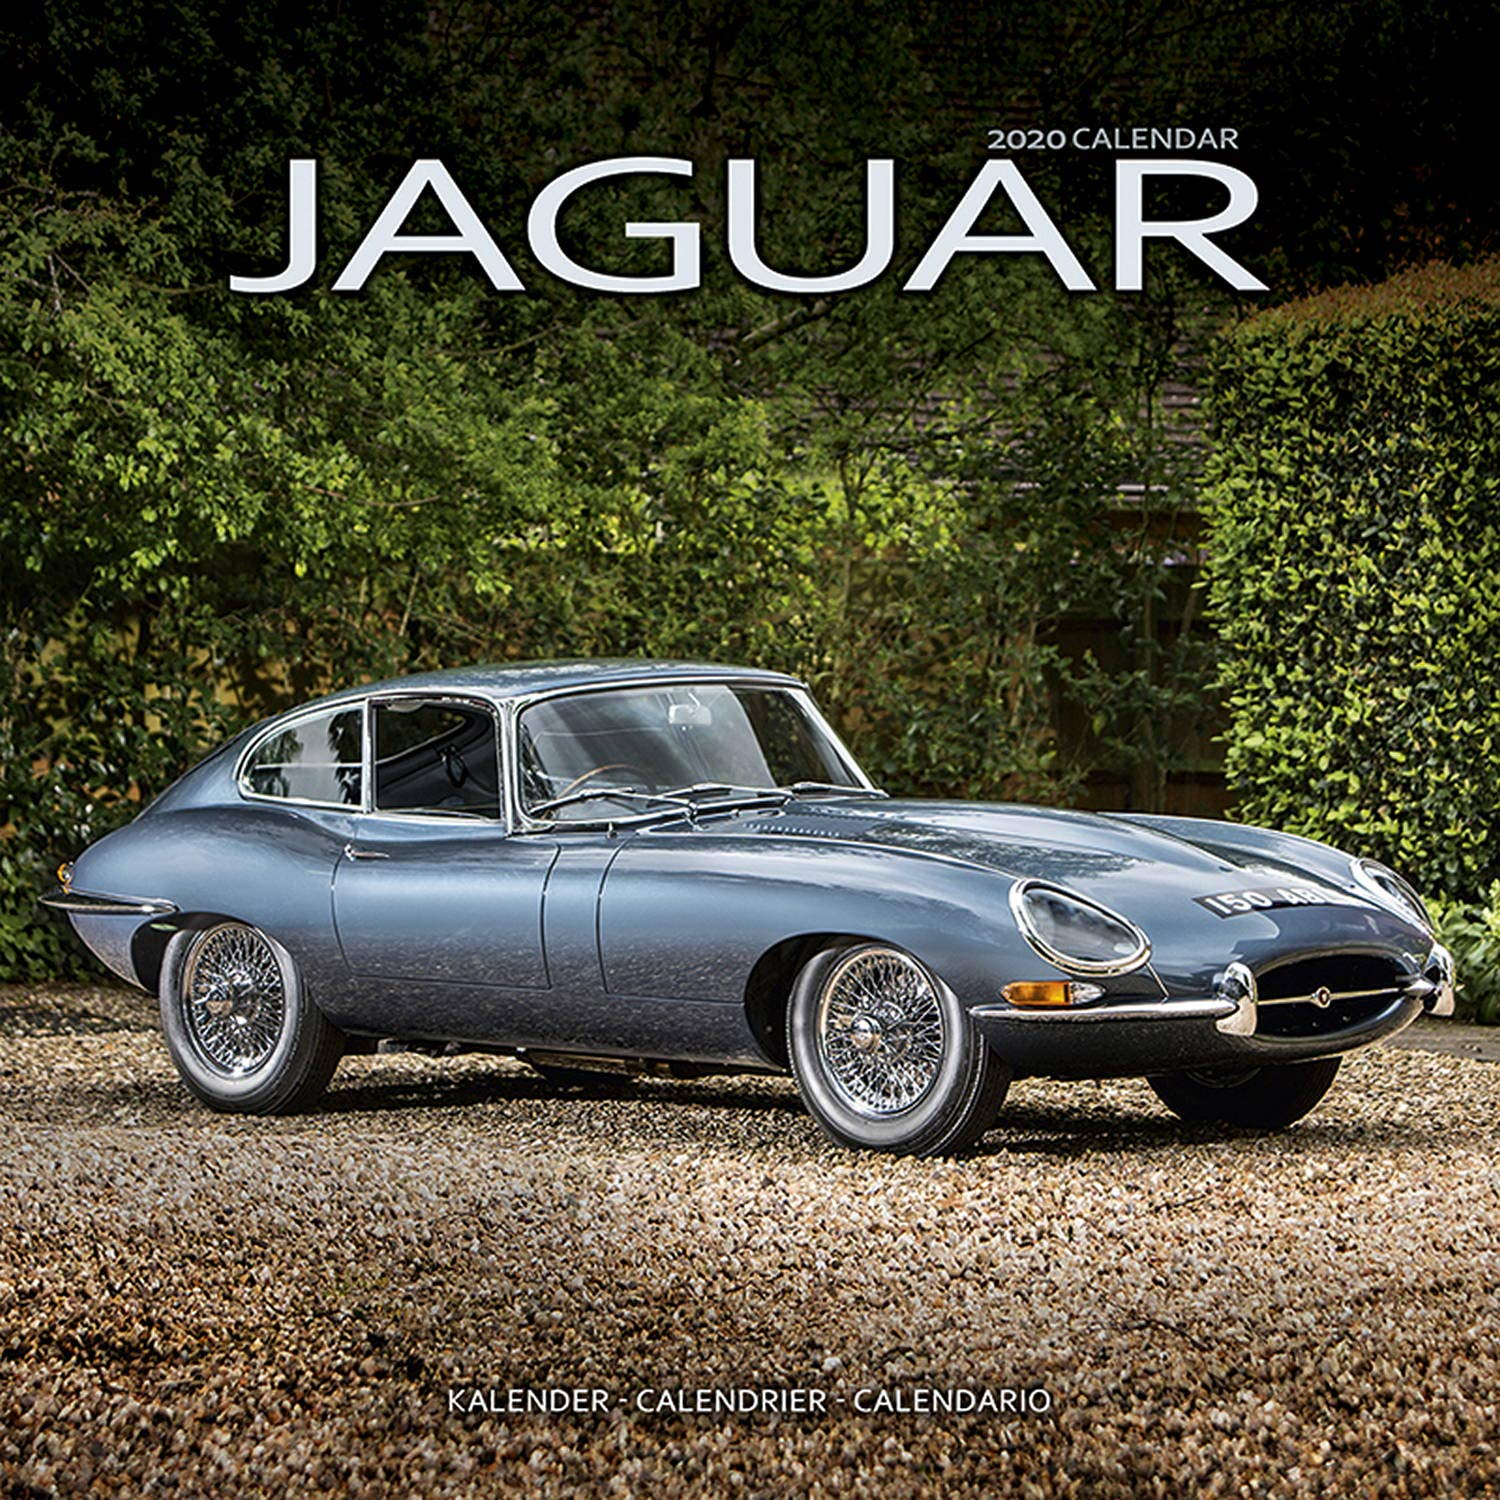 Calendrier Fun Car 2020.Jaguar Calendar Calendars 2019 2020 Wall Calendars Car